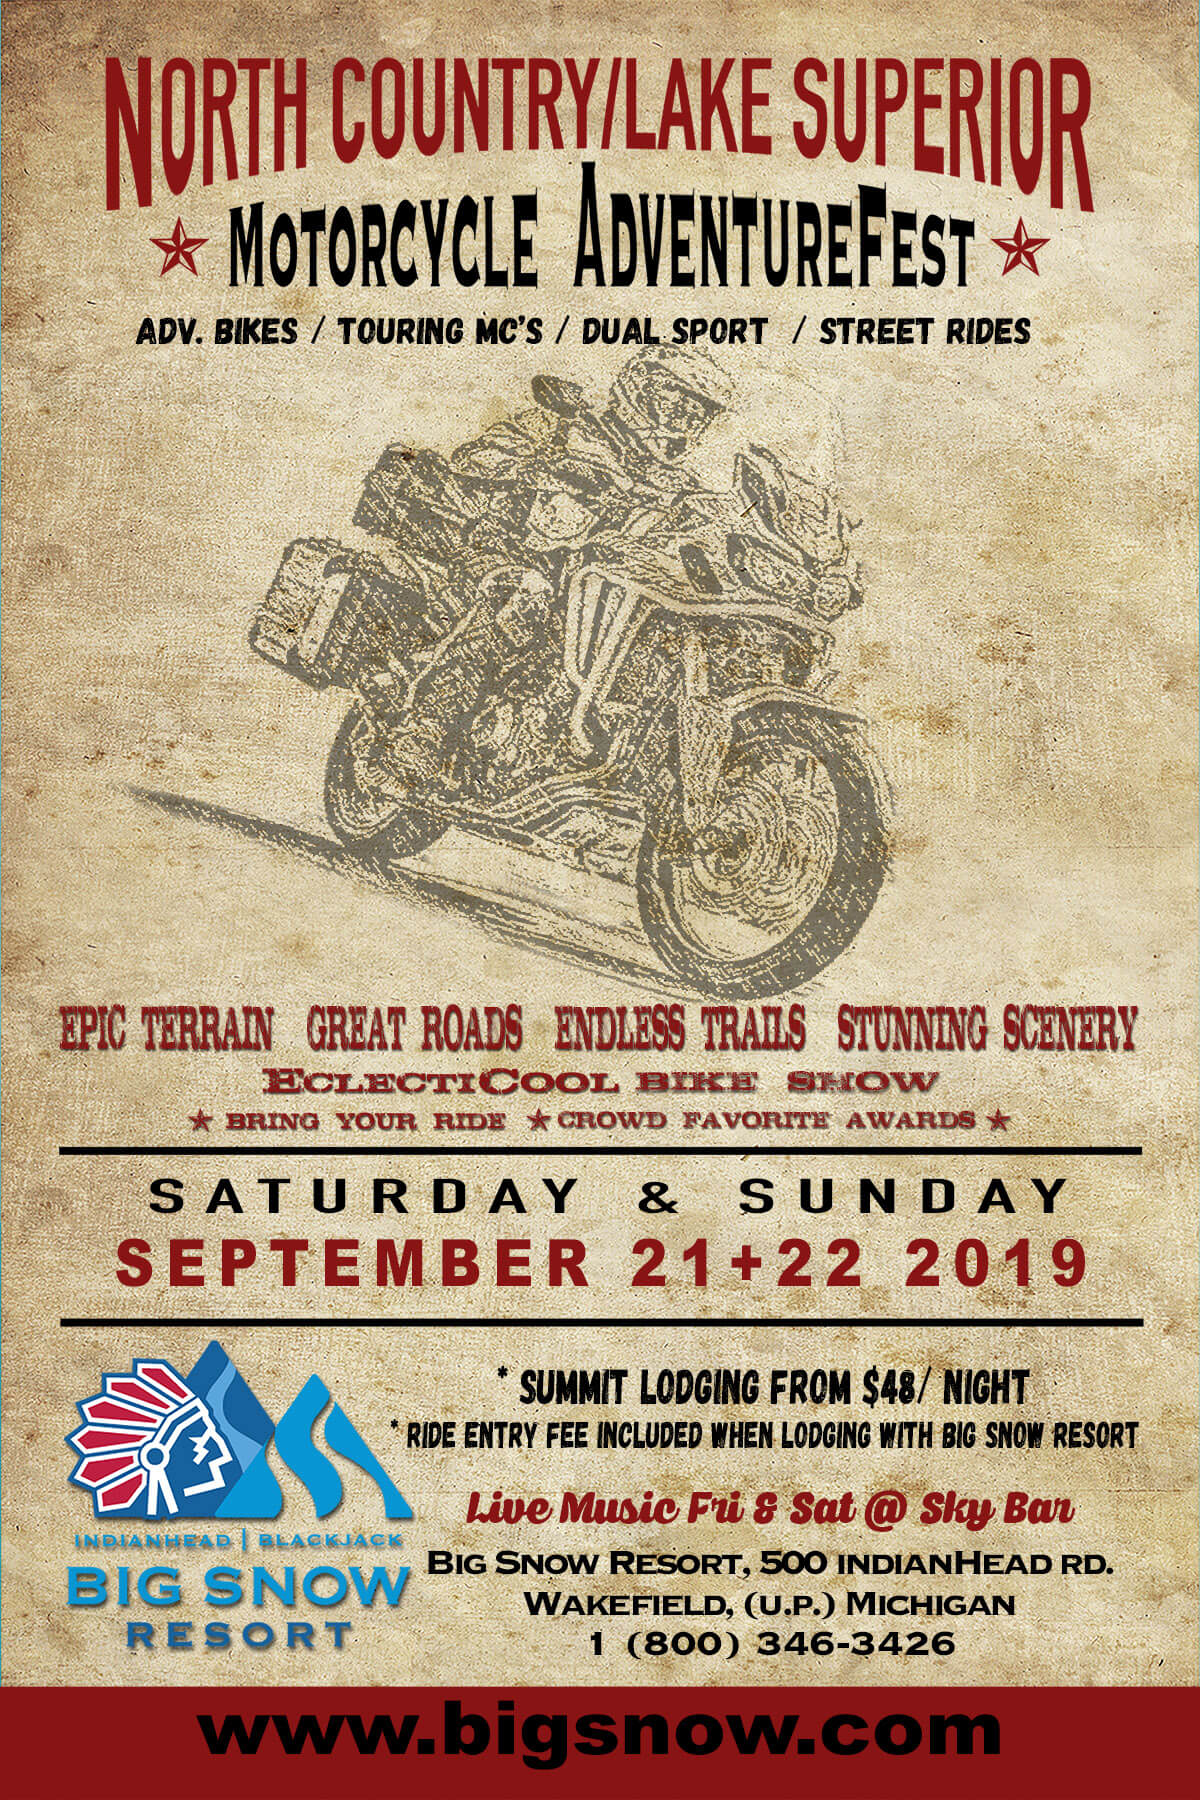 Motorcycle AdventureFest